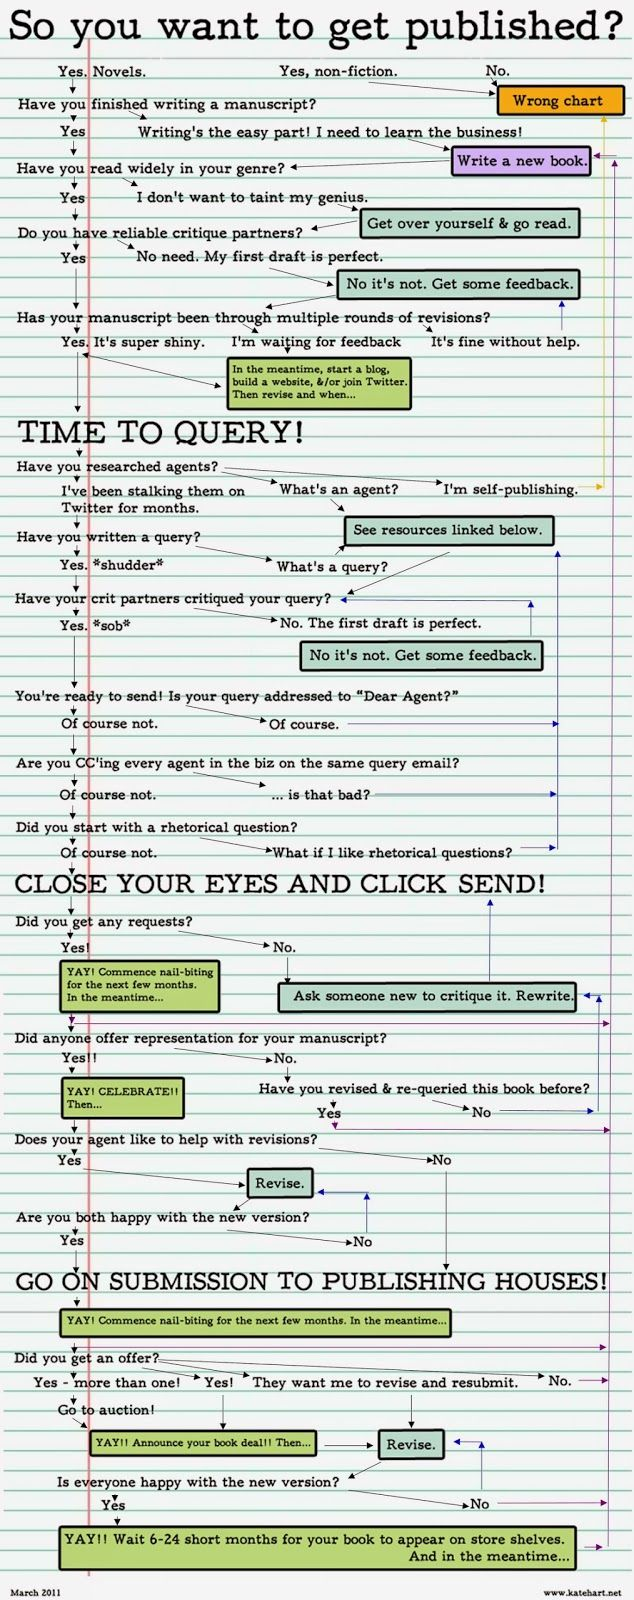 How To Get Published: A Flowchart